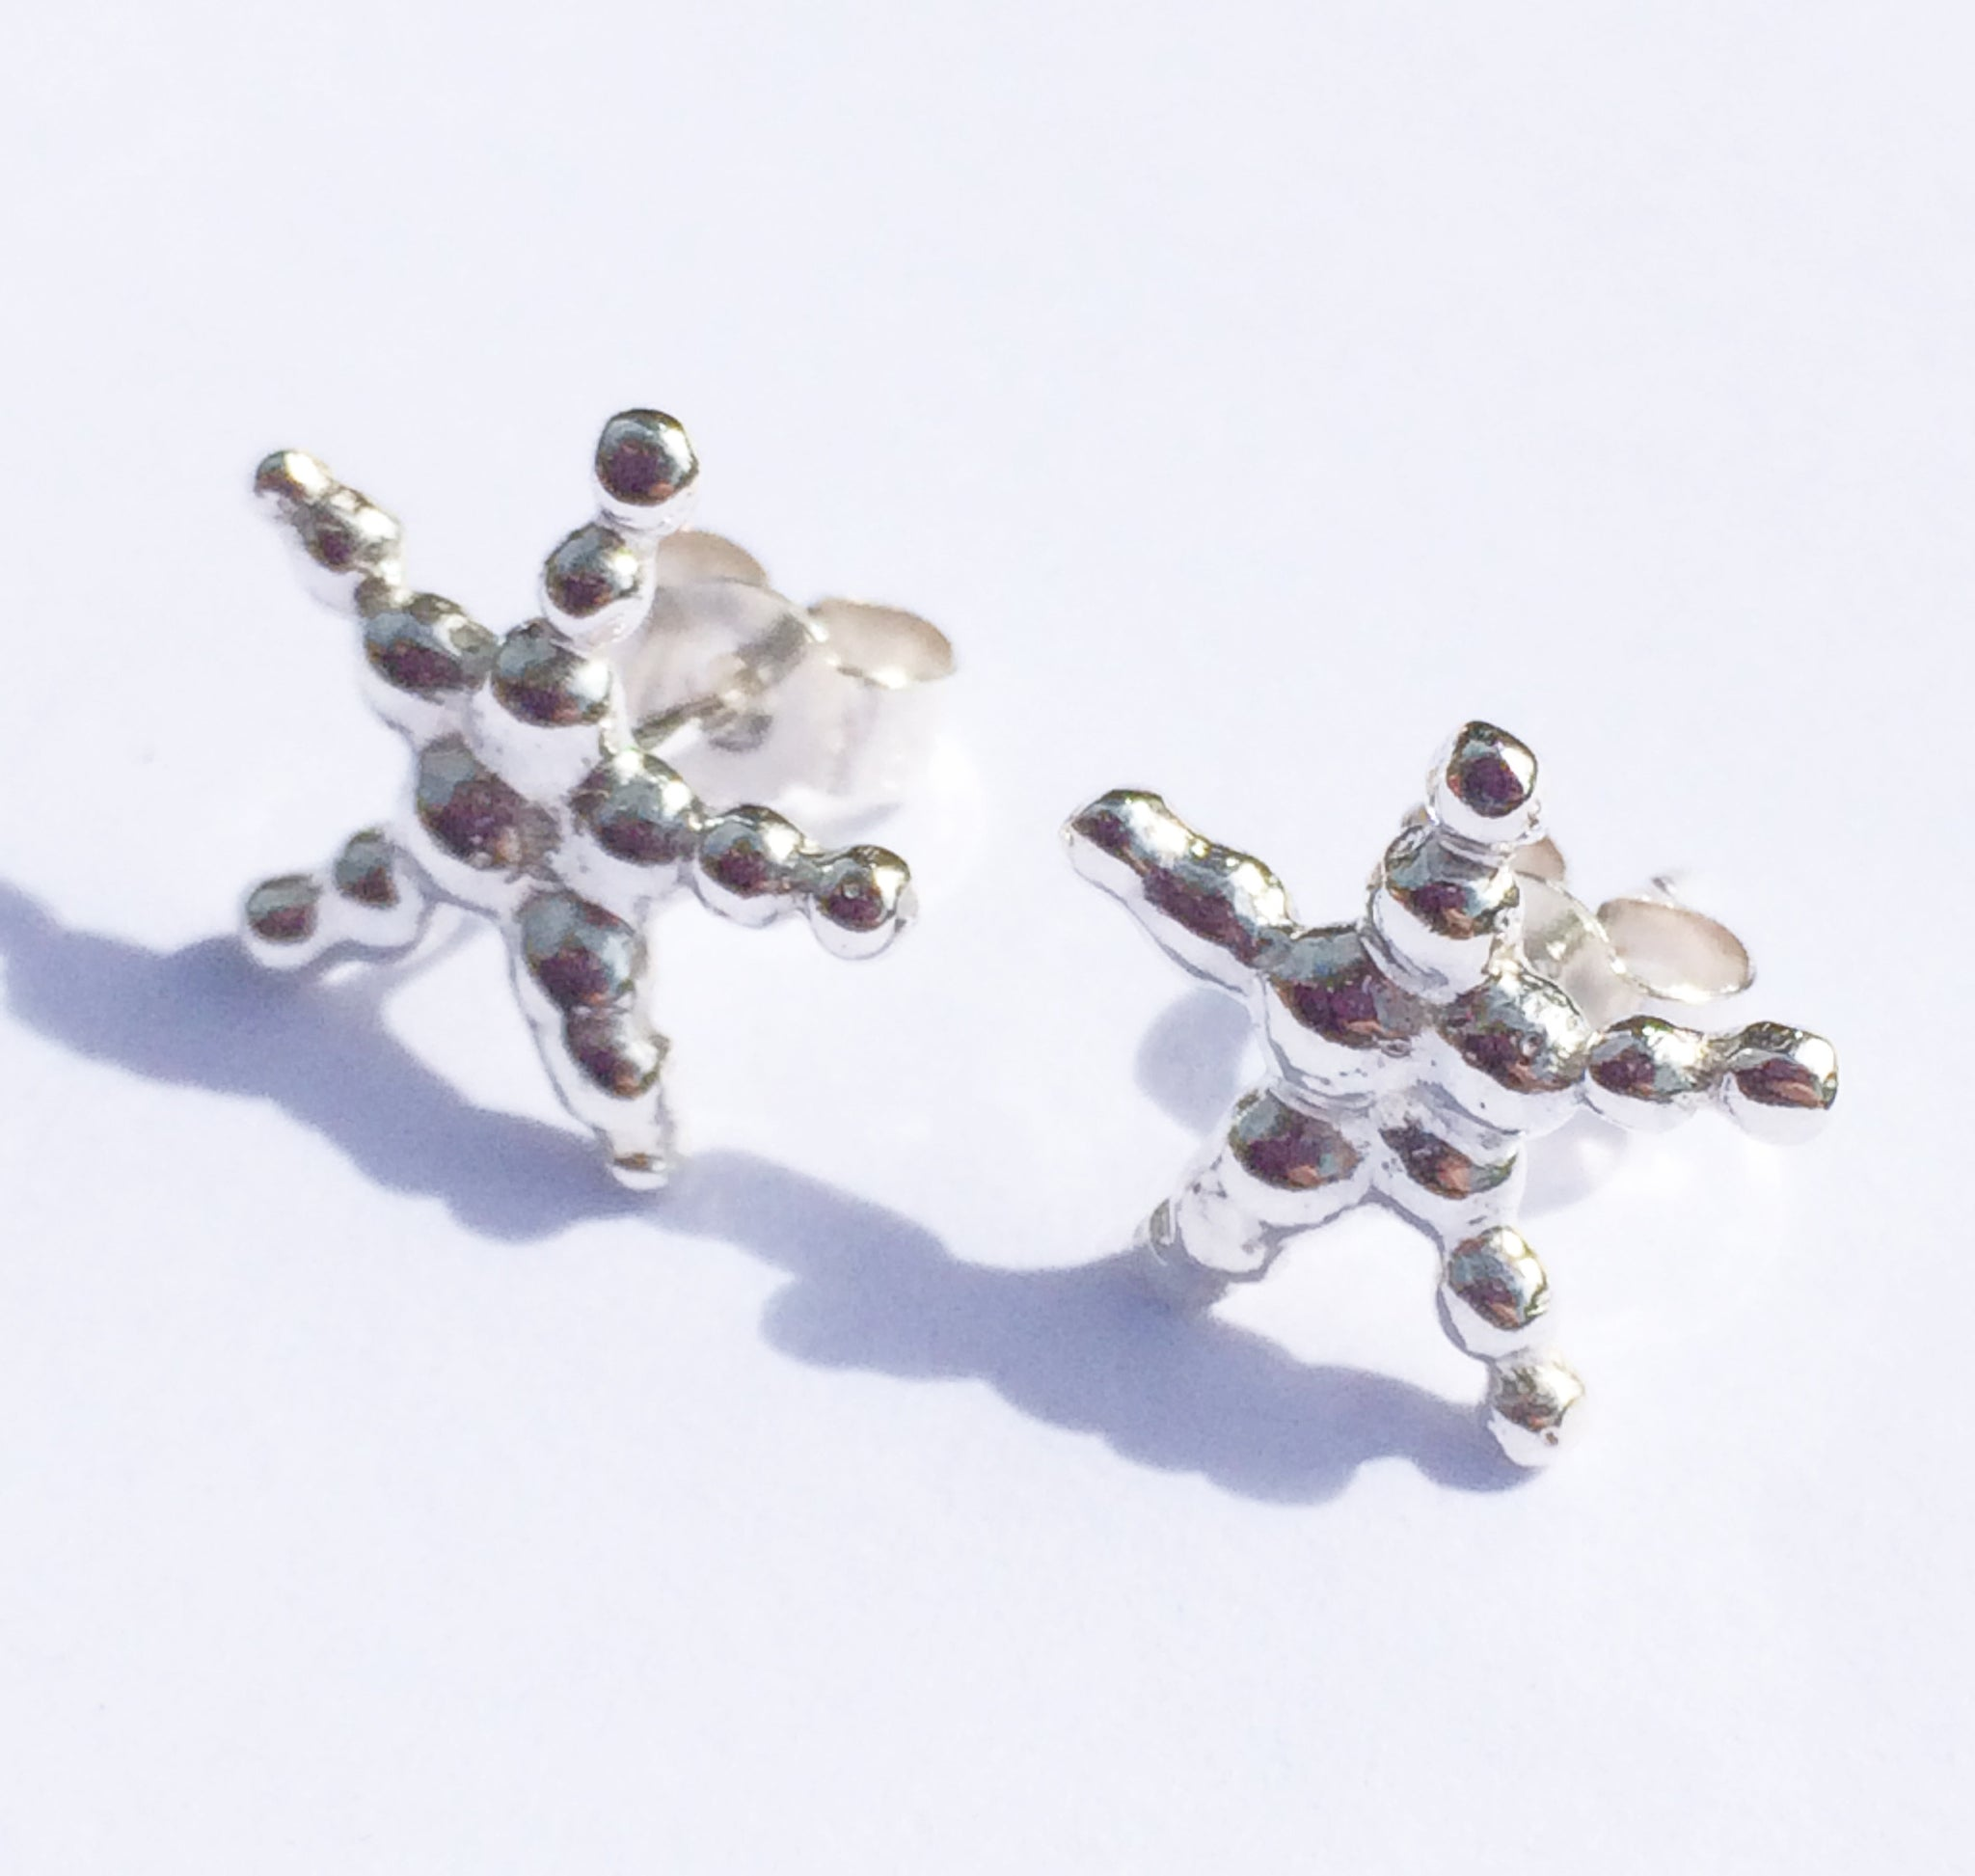 earrings custom topaz products stud studs image starfish jewelry